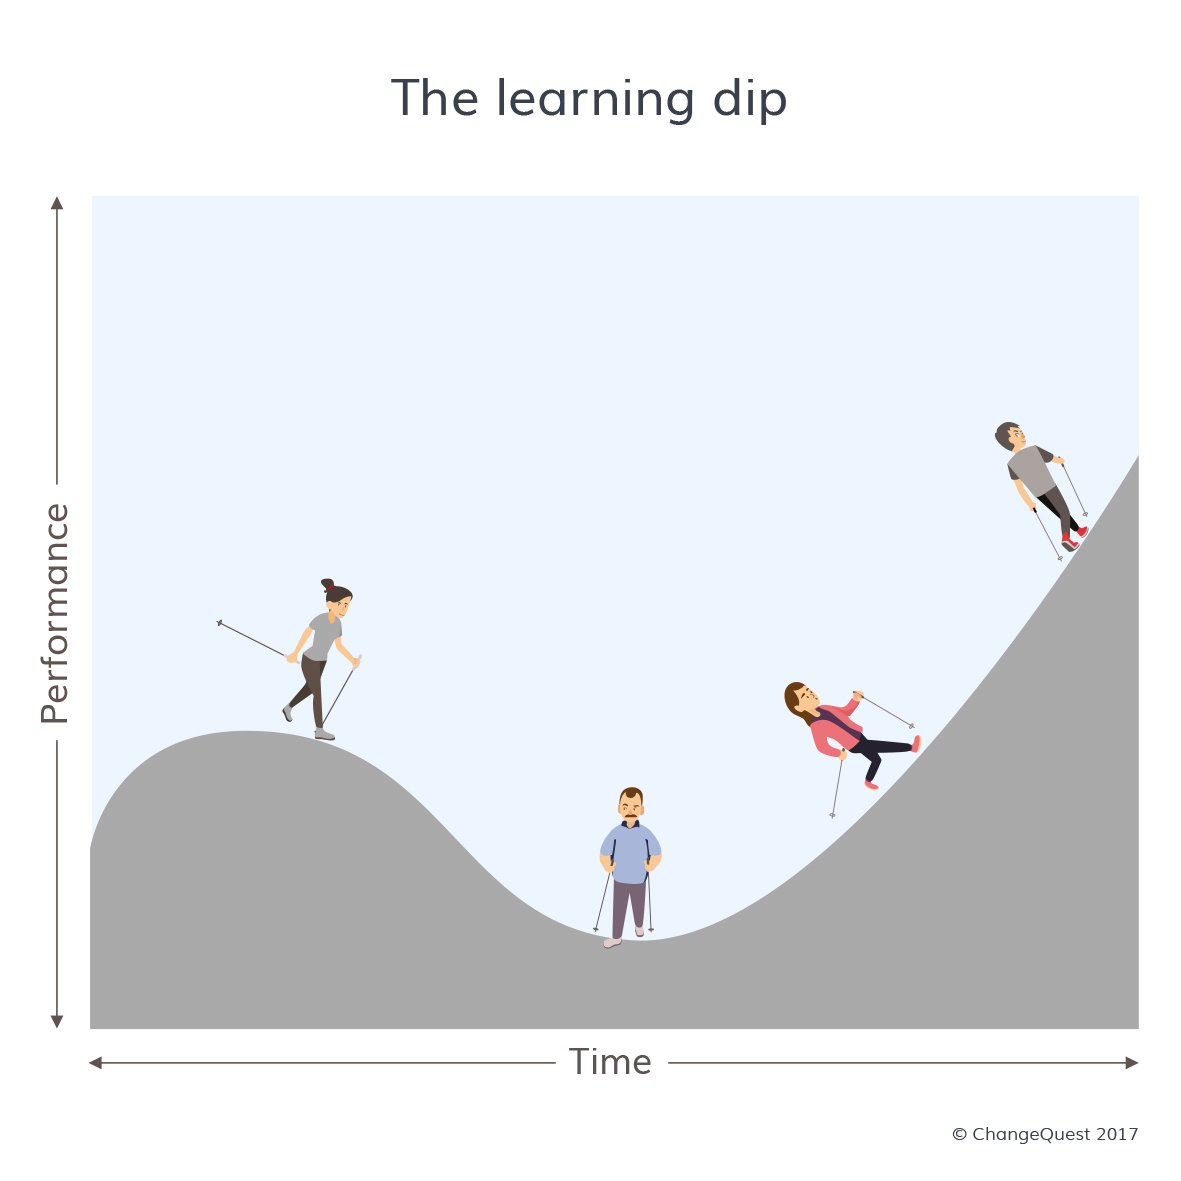 Wp Content Co: Performing Through The Learning Dip